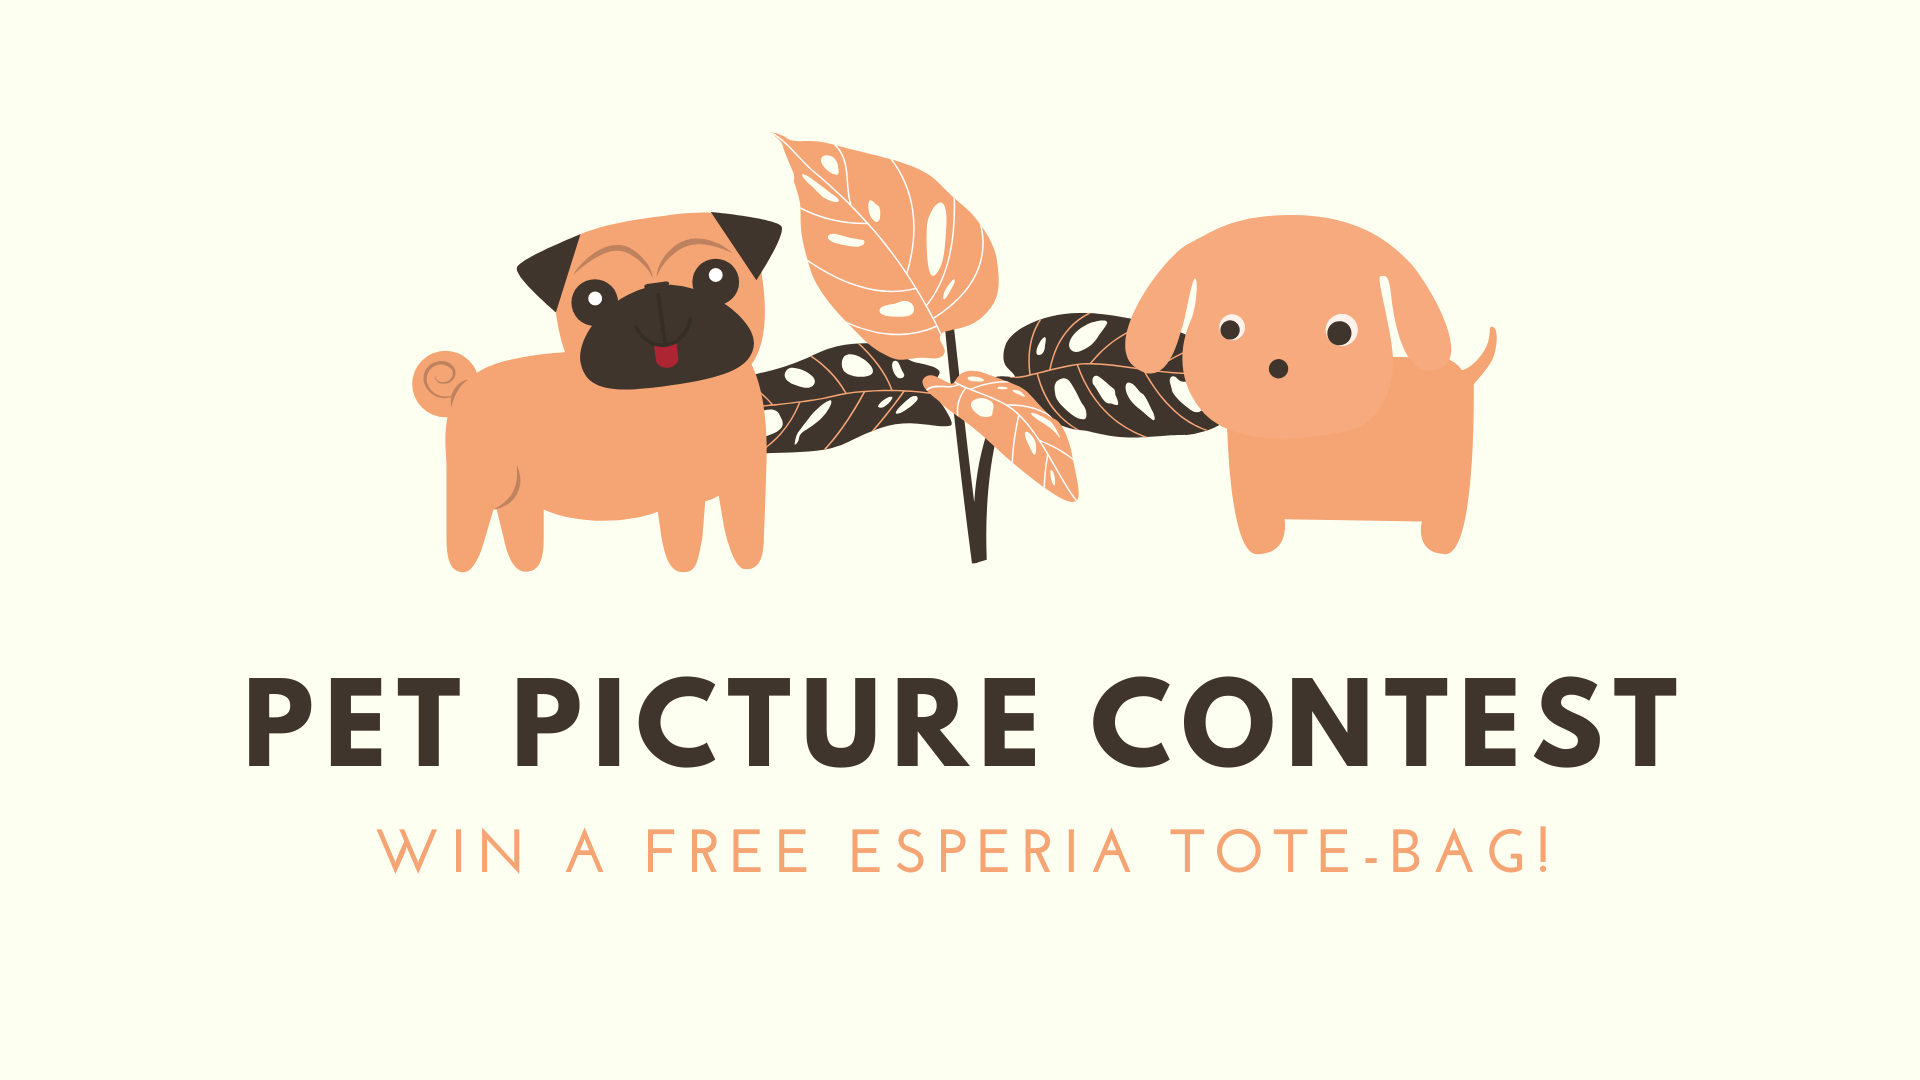 Pet picture contest!